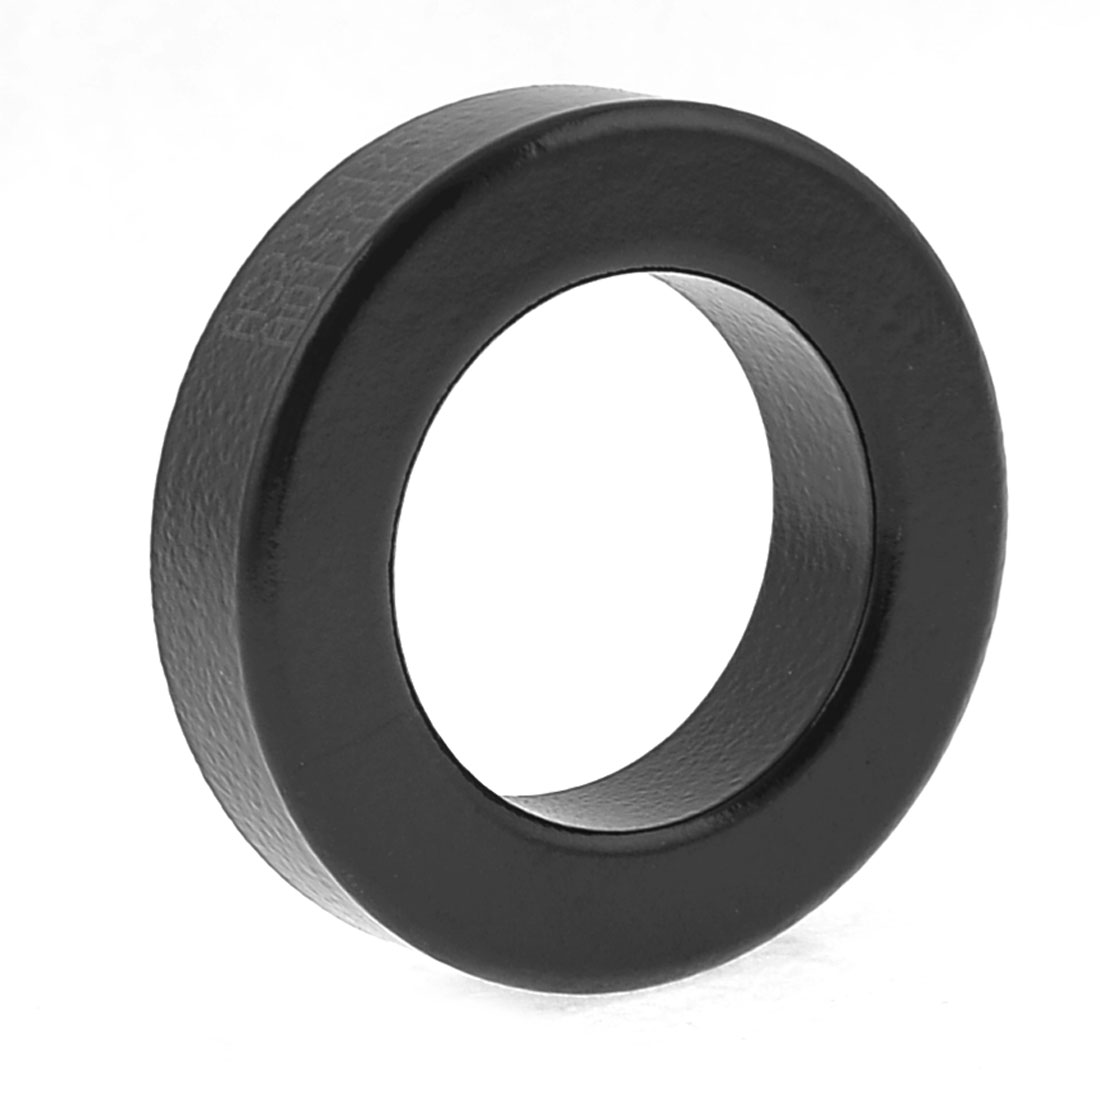 UXCELL High Quality 1pcs 58 x 35 x 14mm 128g Toroid Ferrite Core Transformer Choking Coil Parts As225-125A Black transformers ferrite toroid cores green 74mm x 39mm x 13mm